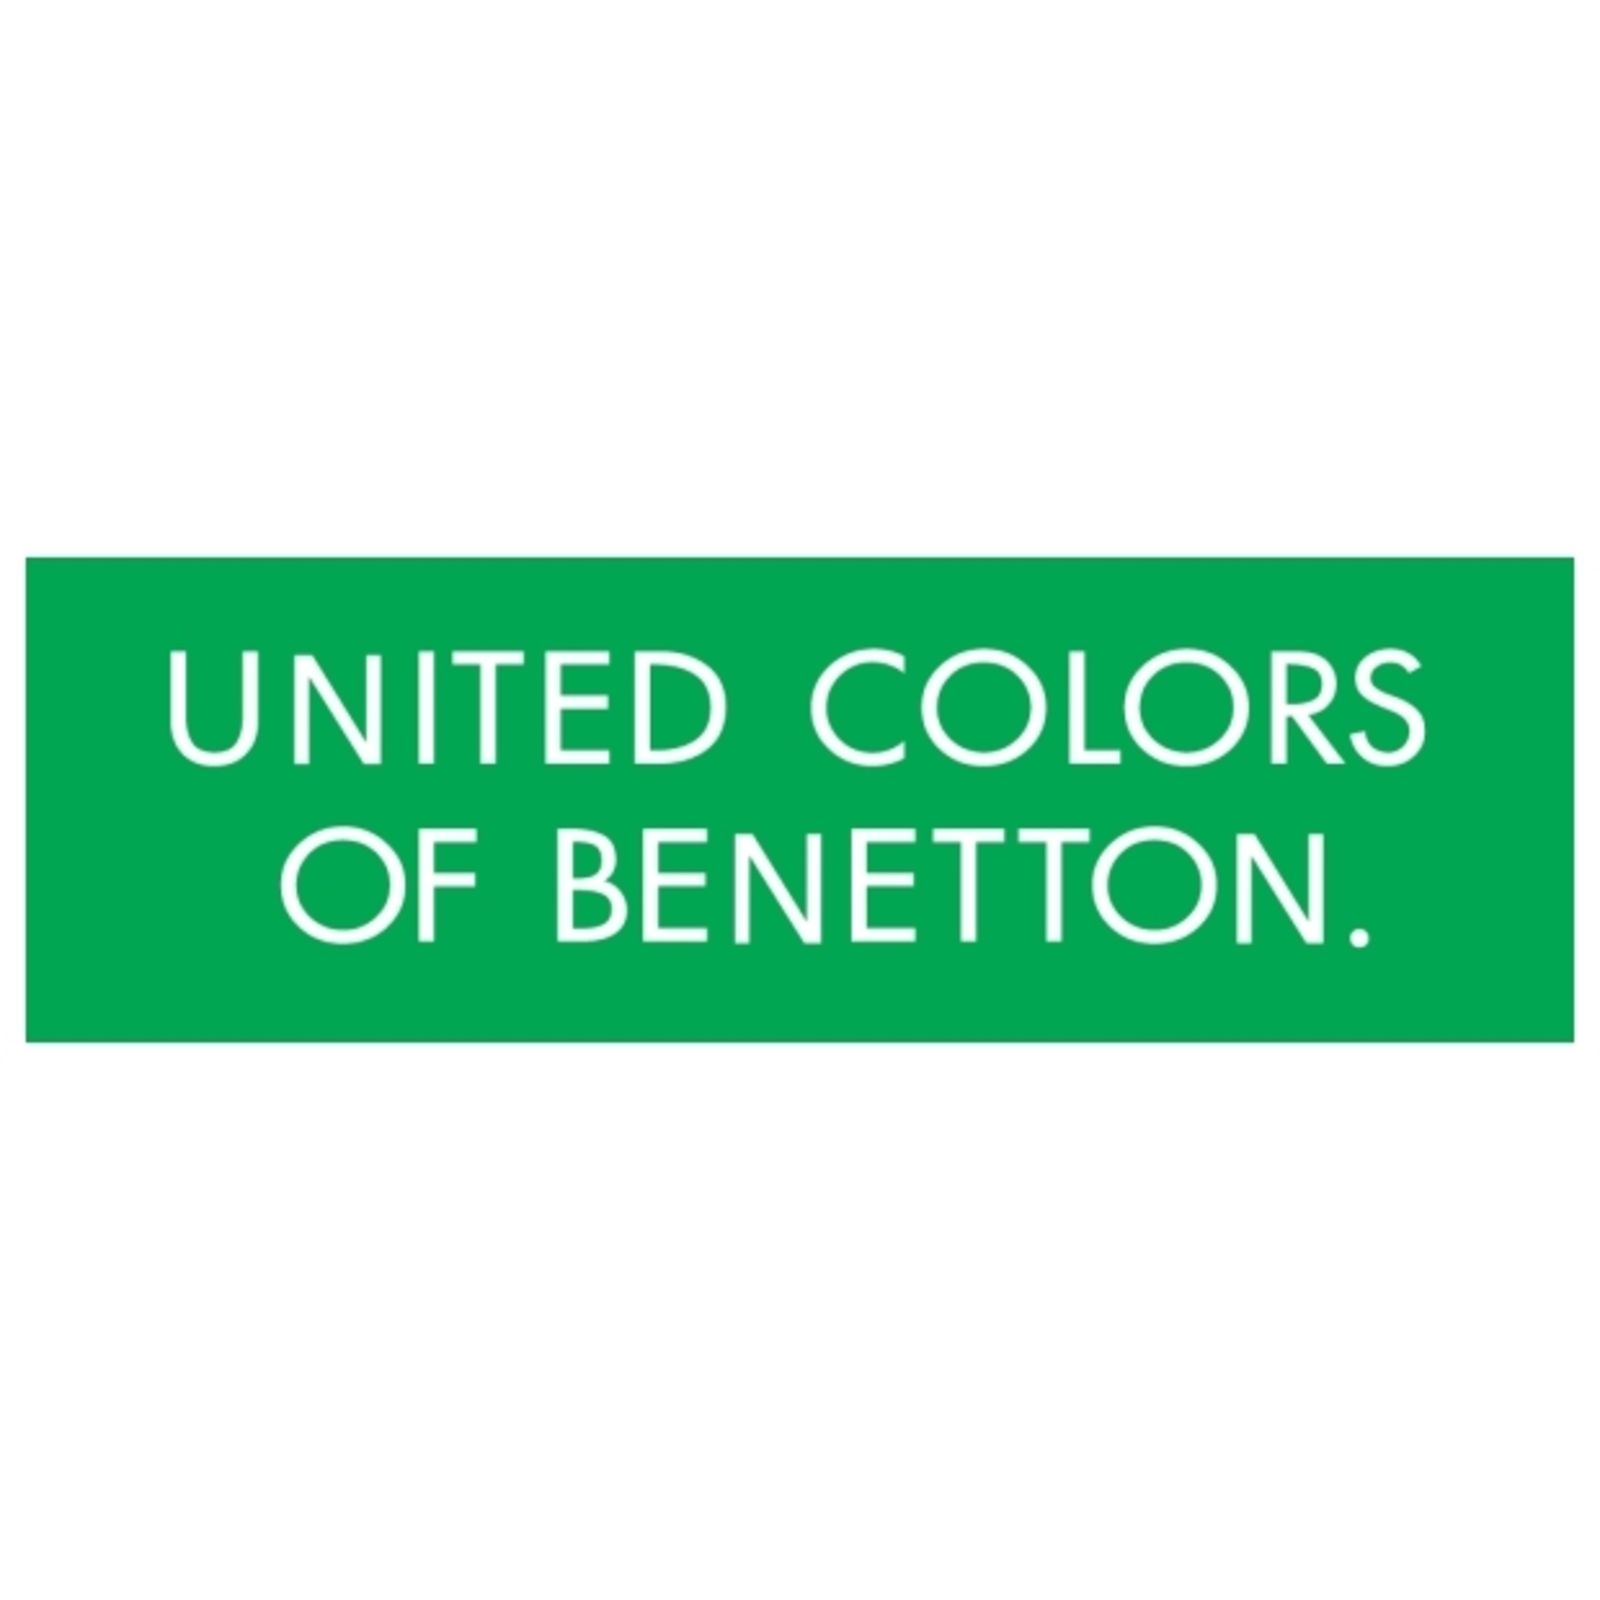 UNITED COLORS OF BENETTON (Image 1)